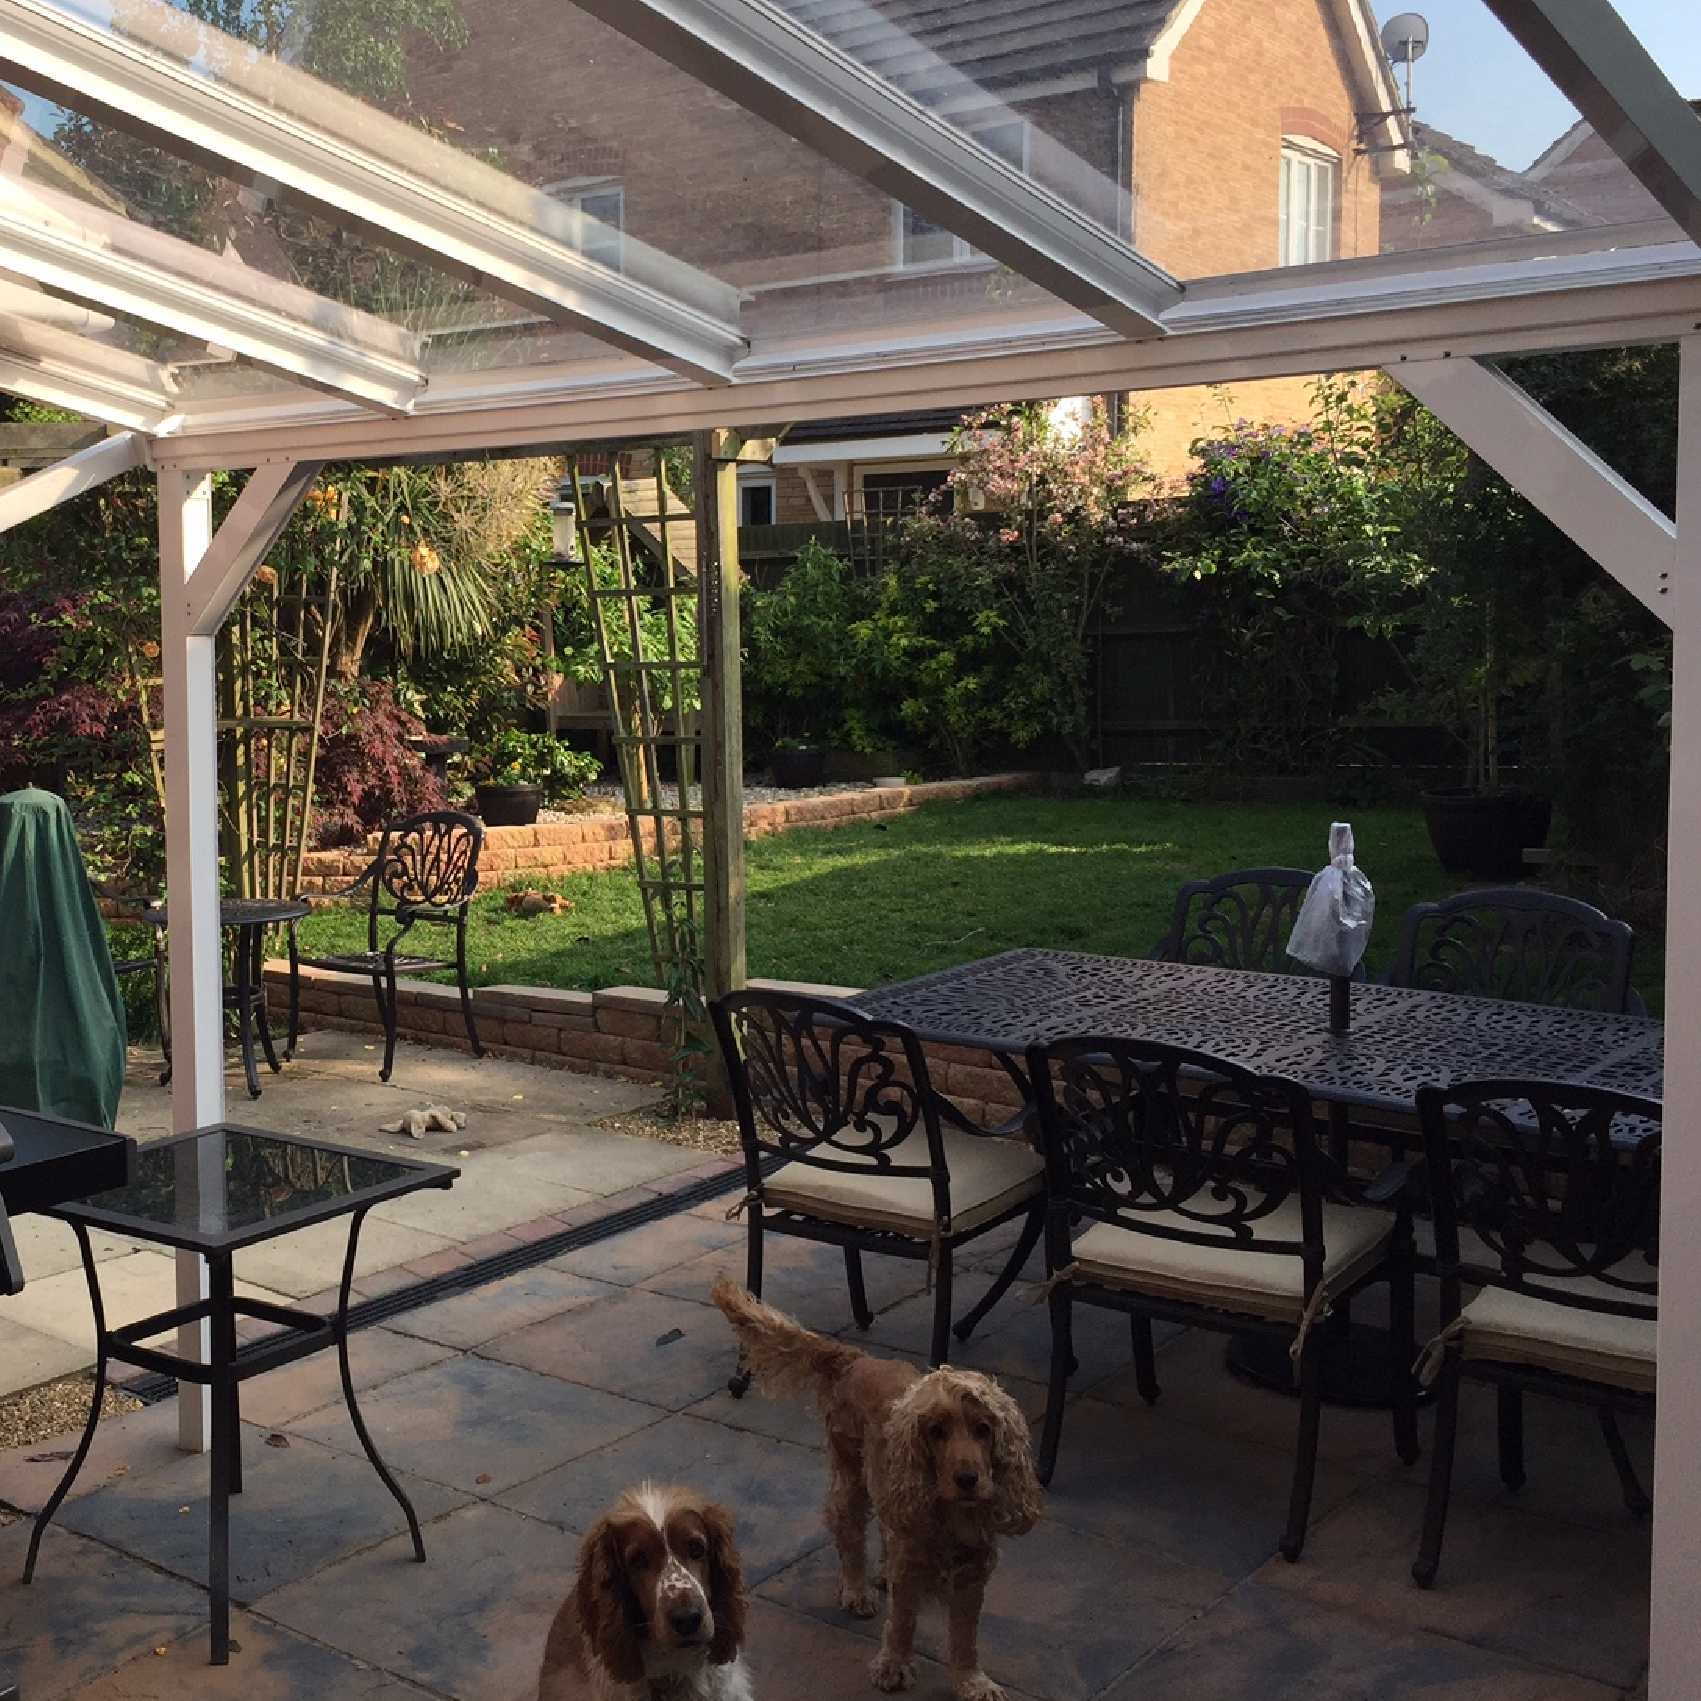 Affordable Omega Smart White Lean-To Canopy UNGLAZED for 6mm Glazing - 6.3m (W) x 1.5m (P), (4) Supporting Posts